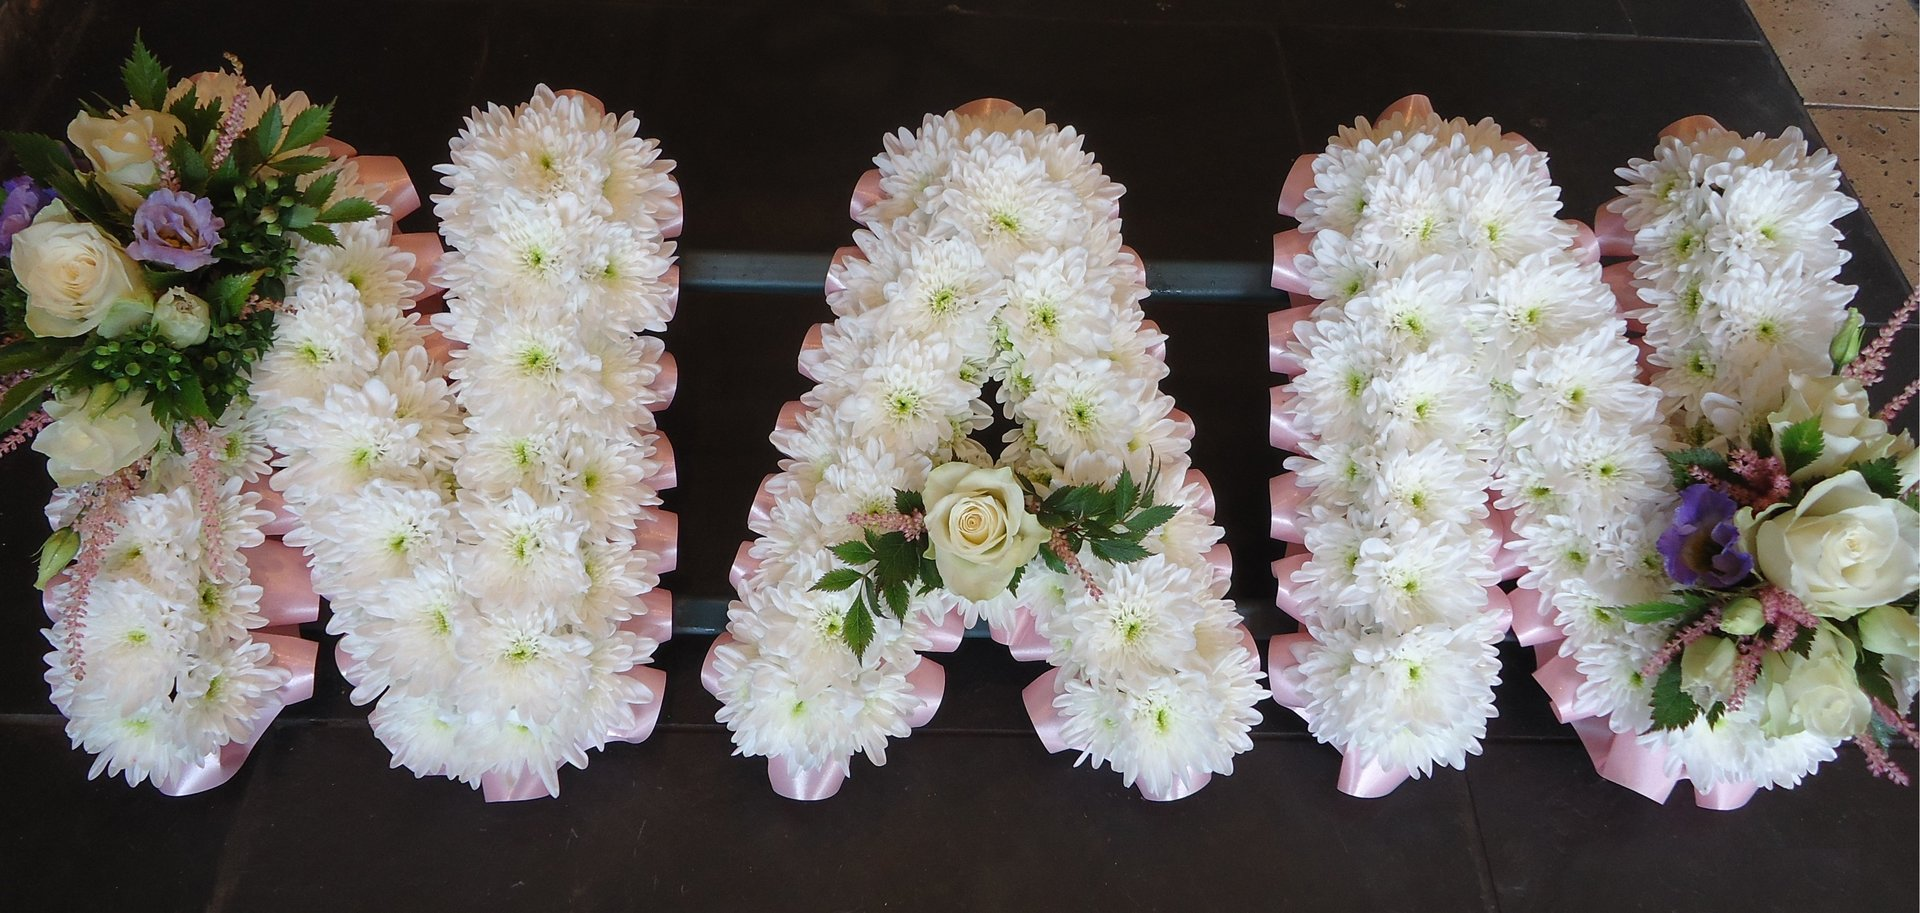 N A N lettered flowers